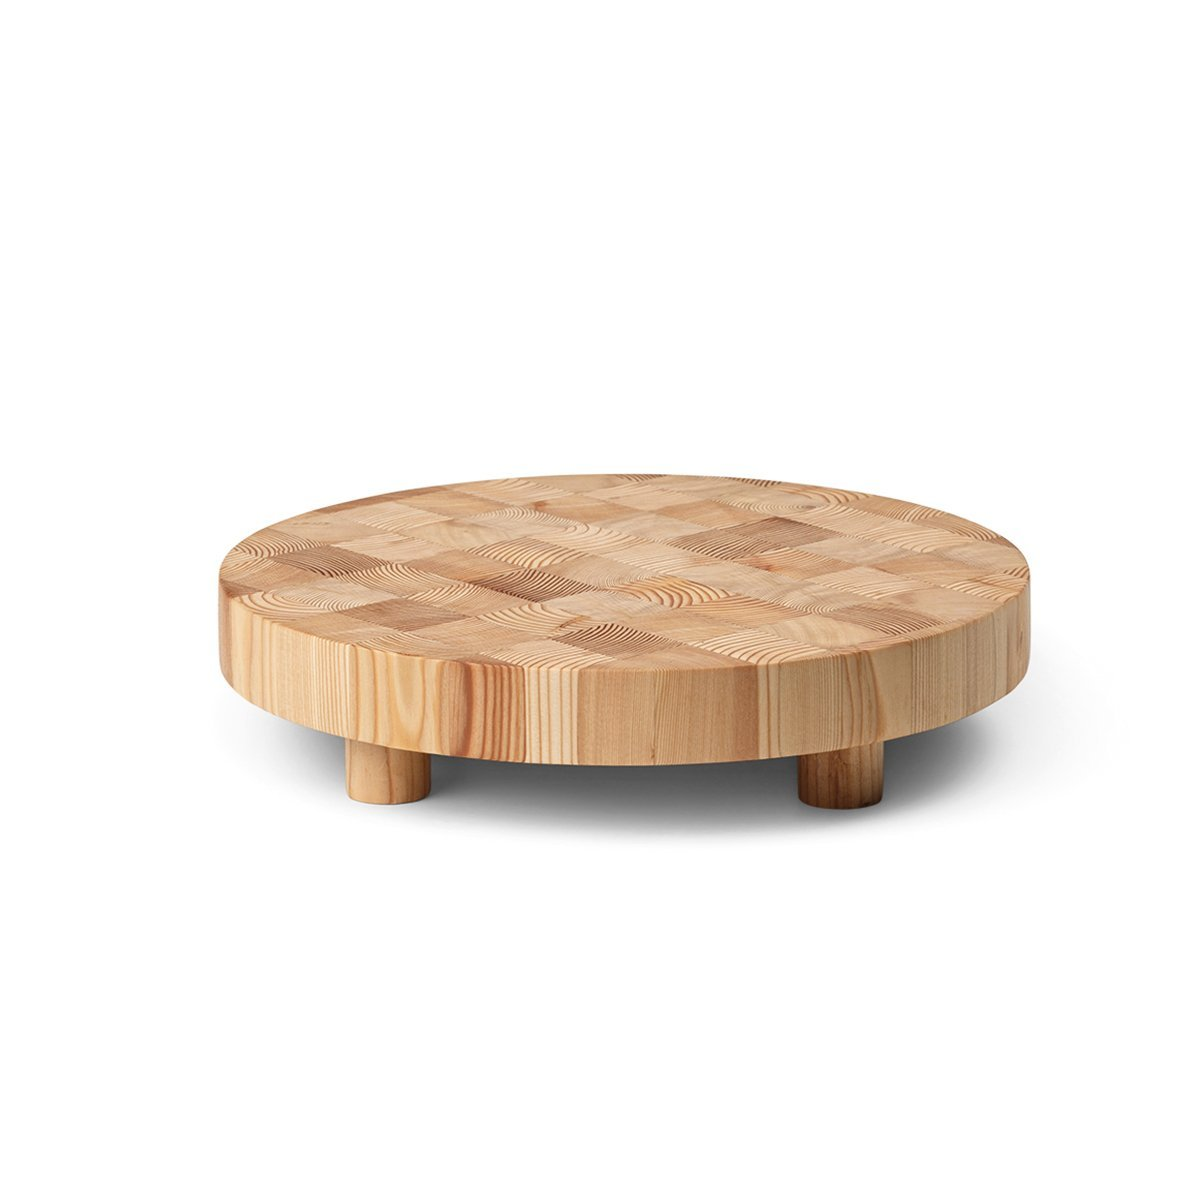 Ferm Living Chess Snijplank - Rond - Small